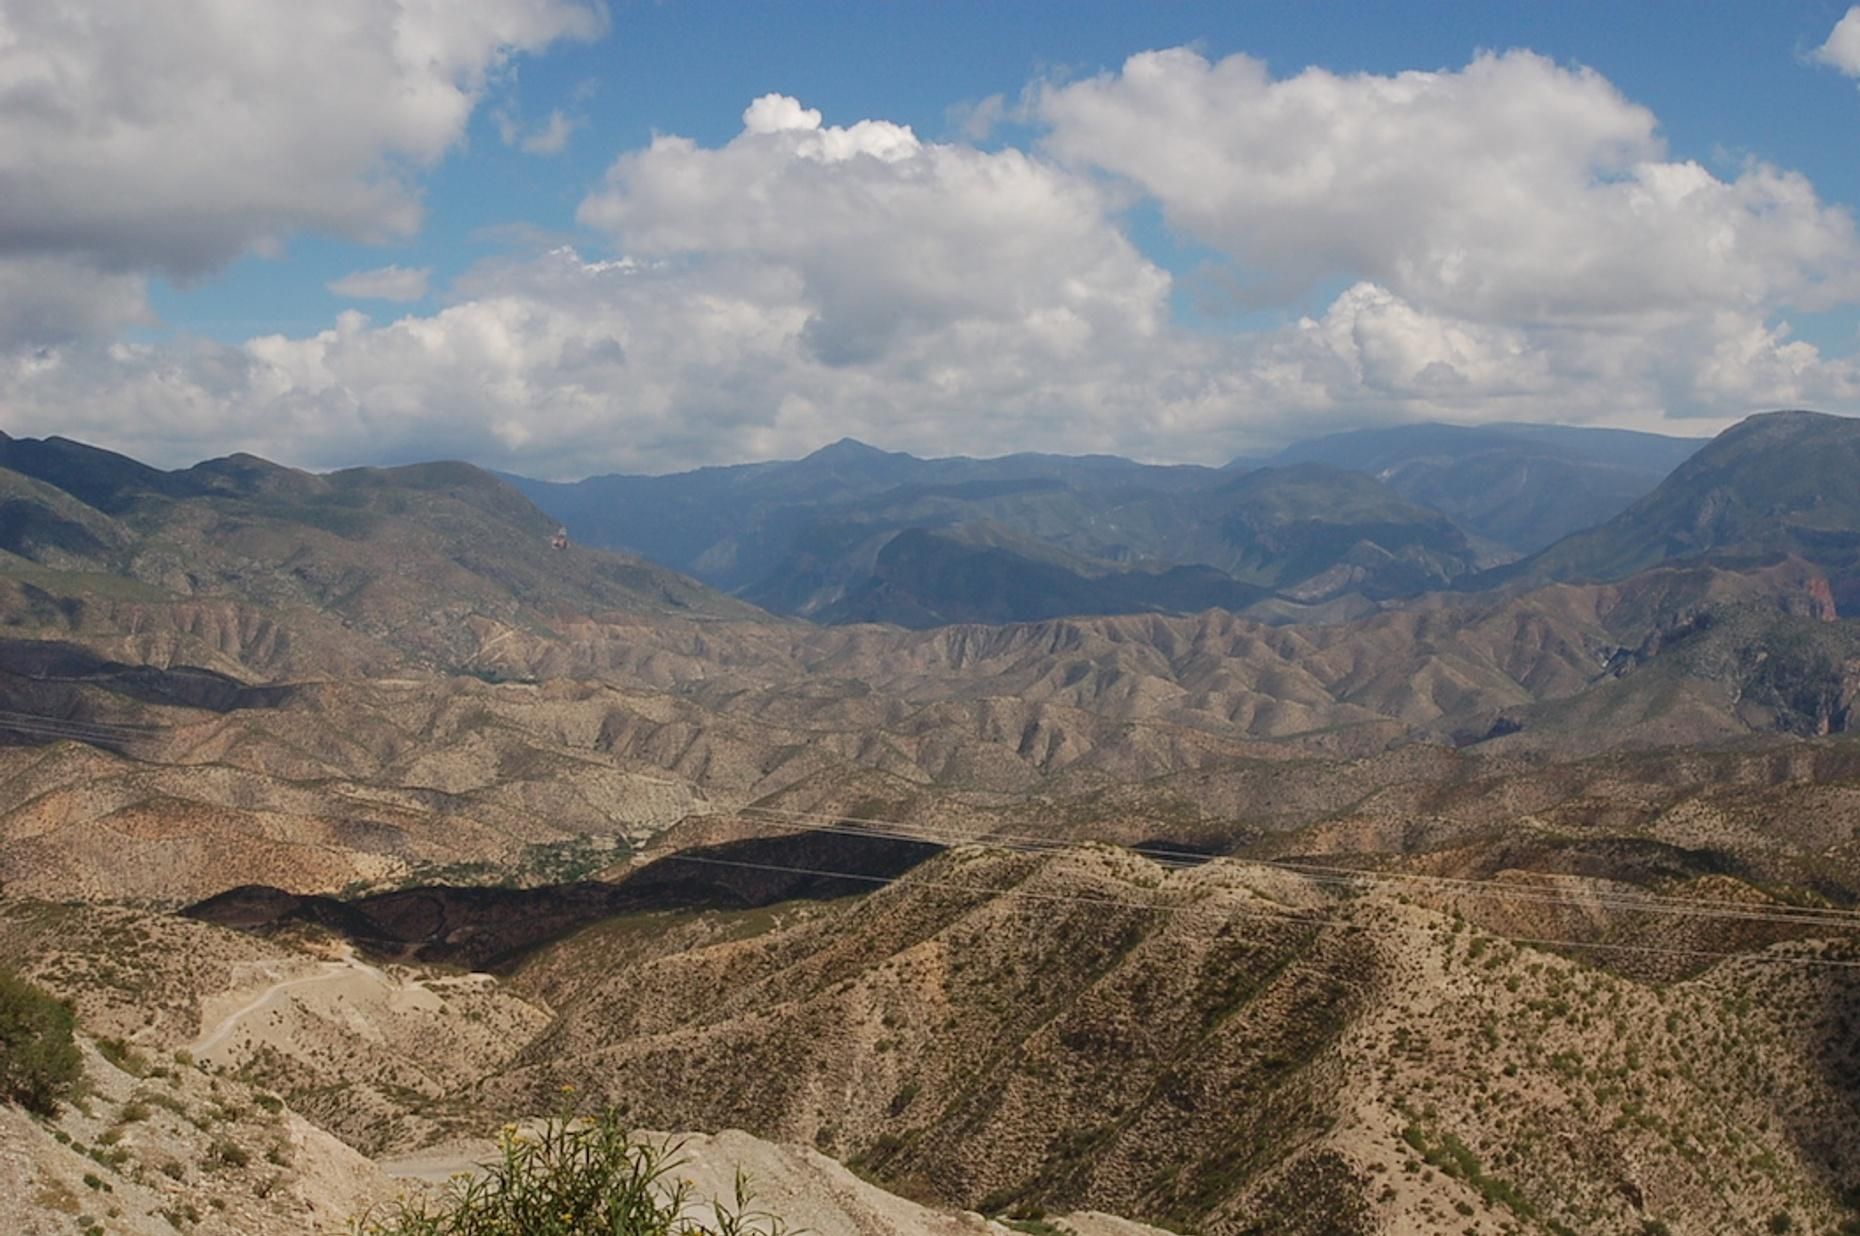 Guided Tour of the Sierra Gorda Mountains in Querétaro